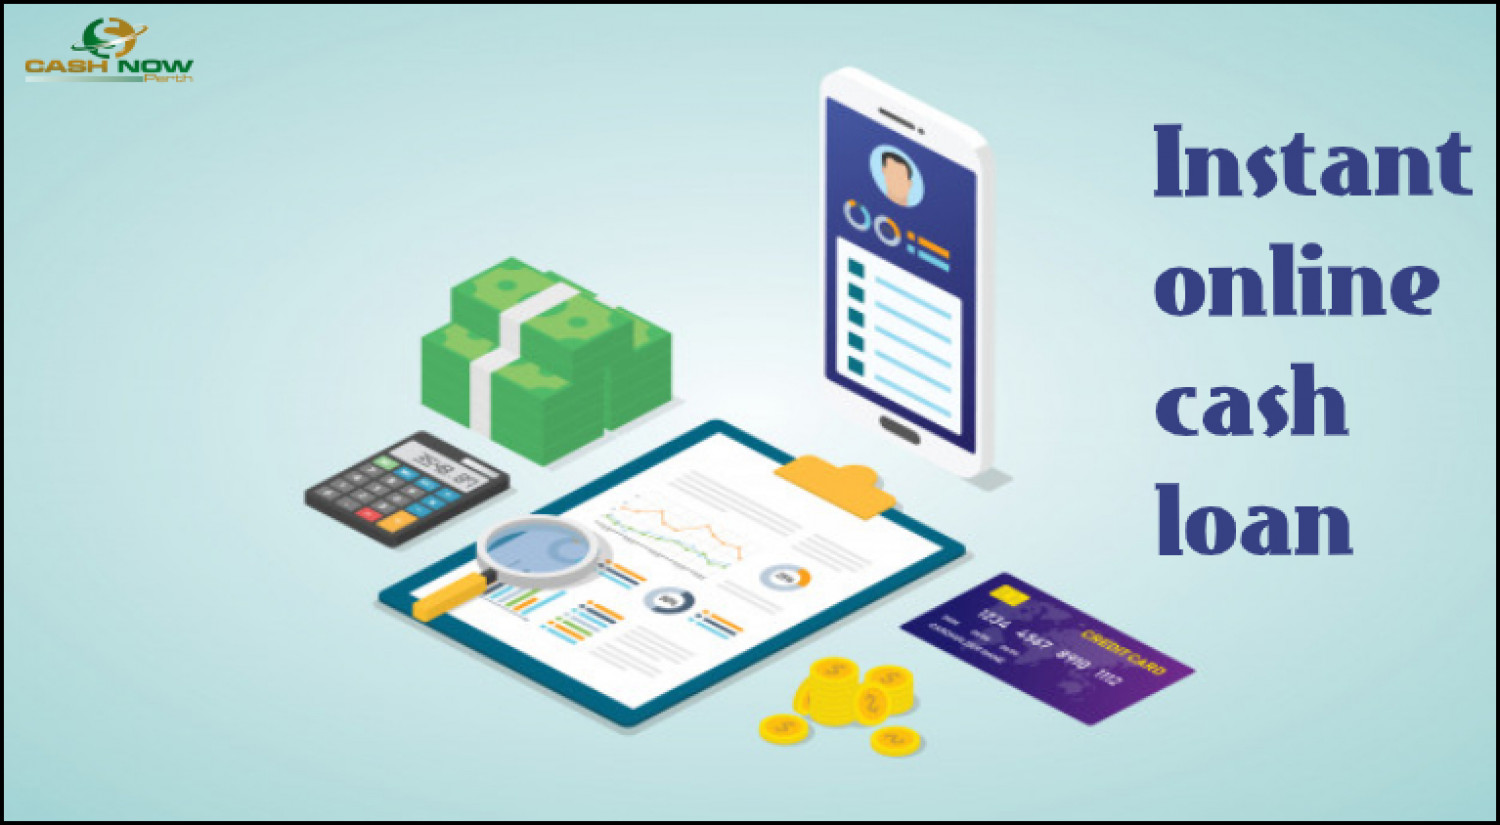 How You Can Benefit From an Instant online cash loan Infographic